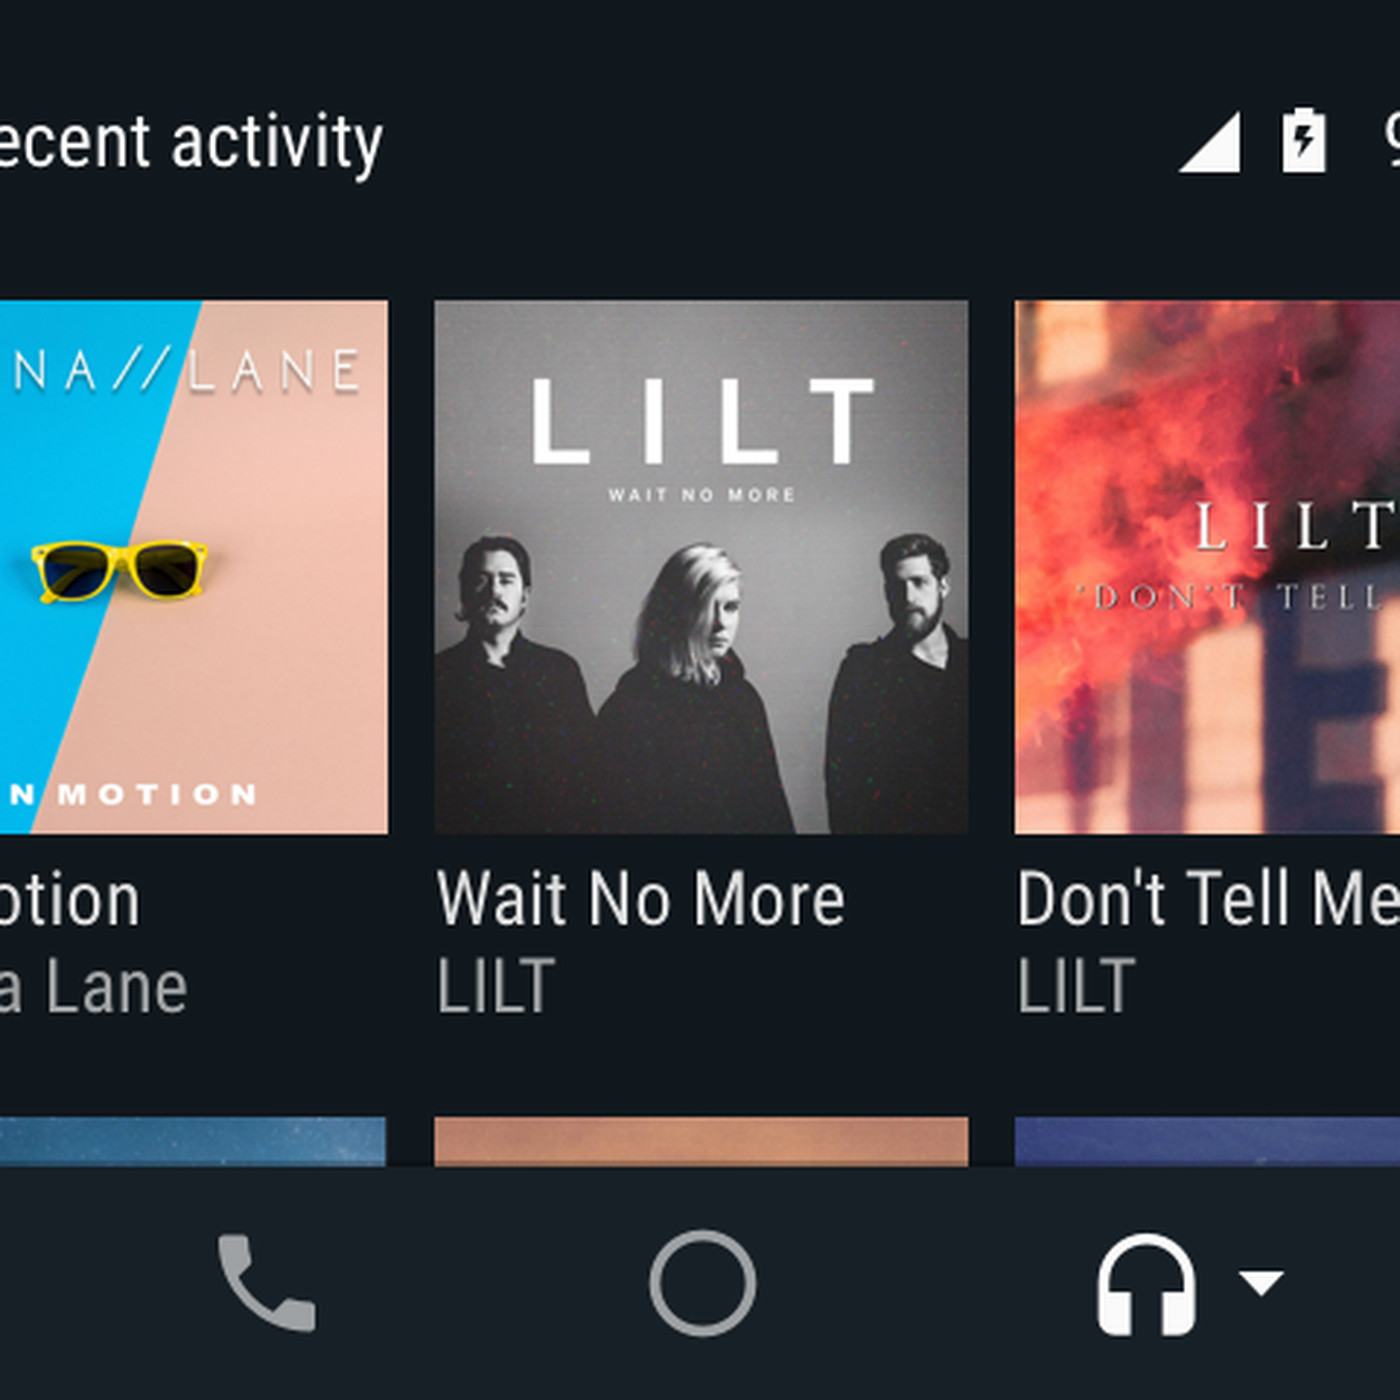 Android Auto update makes playing music and messaging easier and